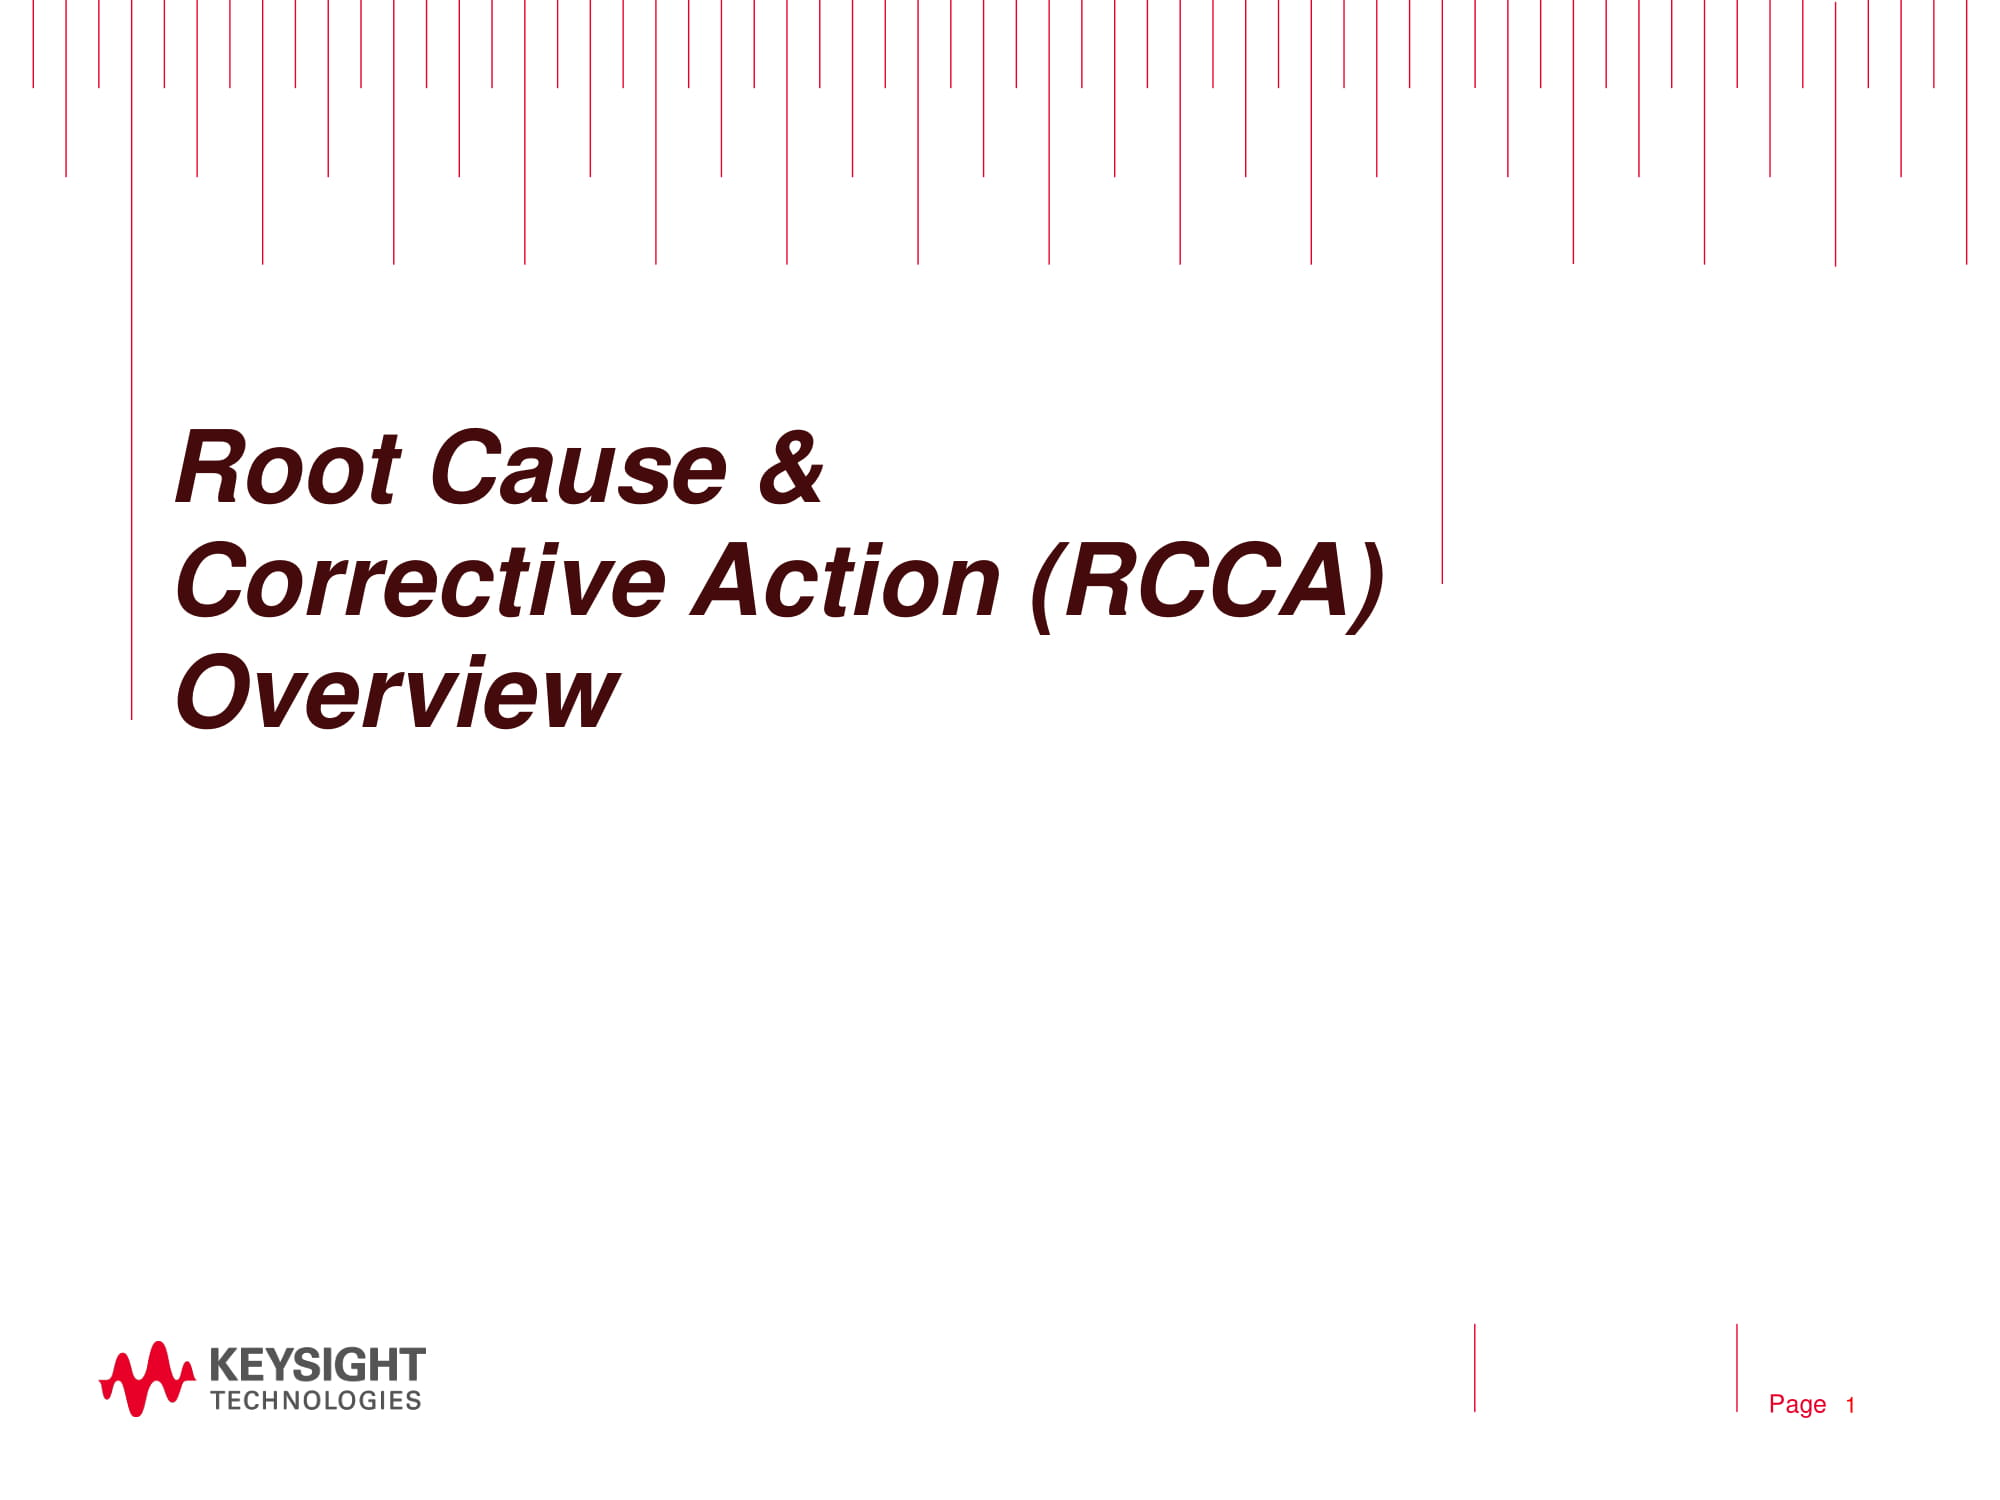 root cause and corrective action overview for reporting purposes example 01